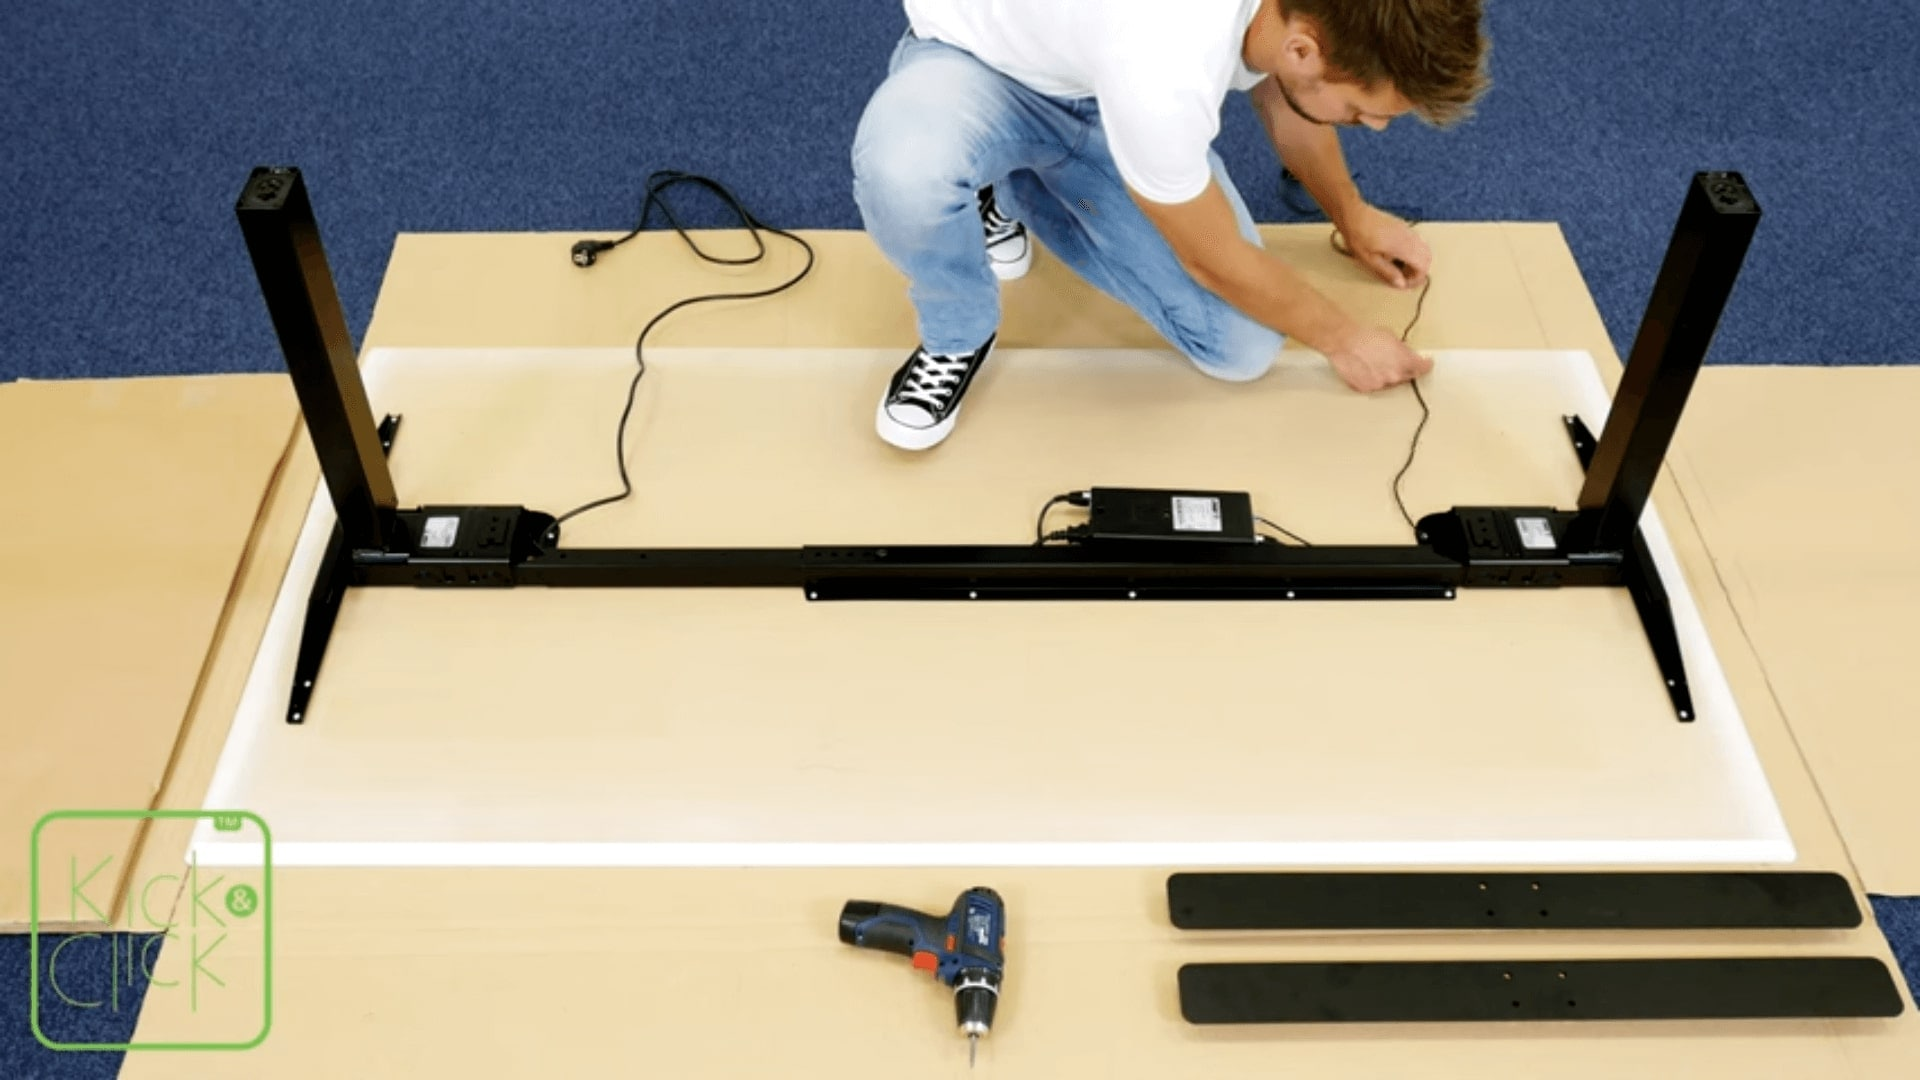 LINAK Kick & Click - How to easily assemble an office desk